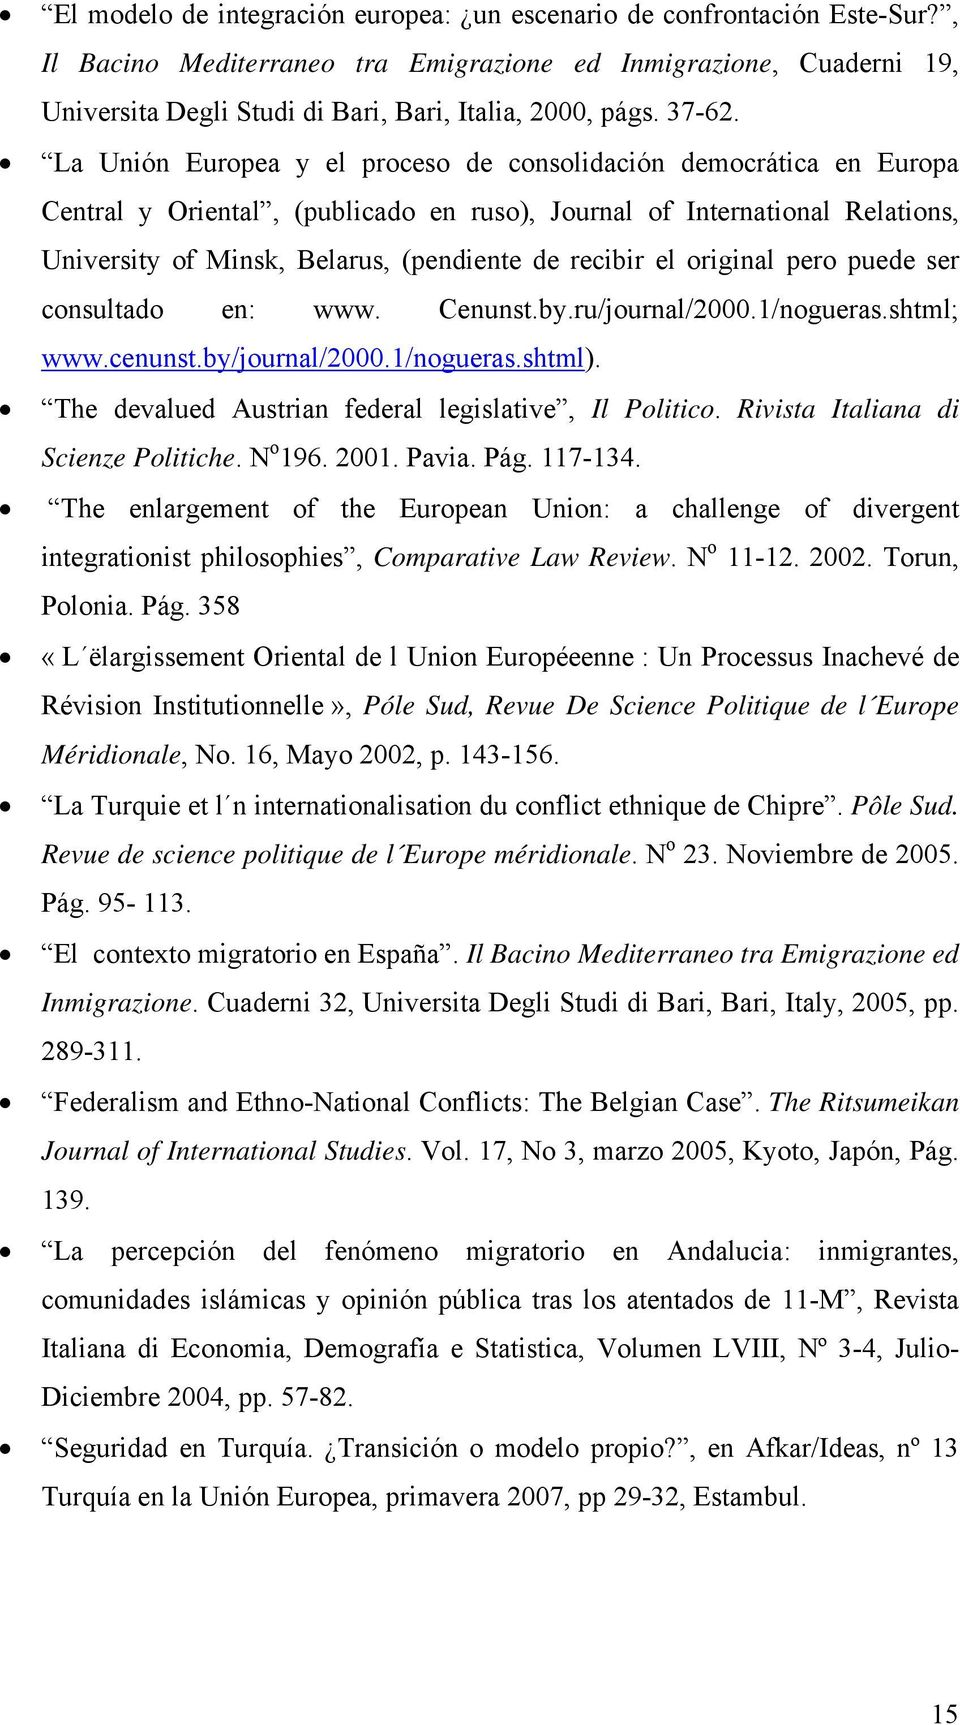 La Unión Europea y el proceso de consolidación democrática en Europa Central y Oriental, (publicado en ruso), Journal of International Relations, University of Minsk, Belarus, (pendiente de recibir